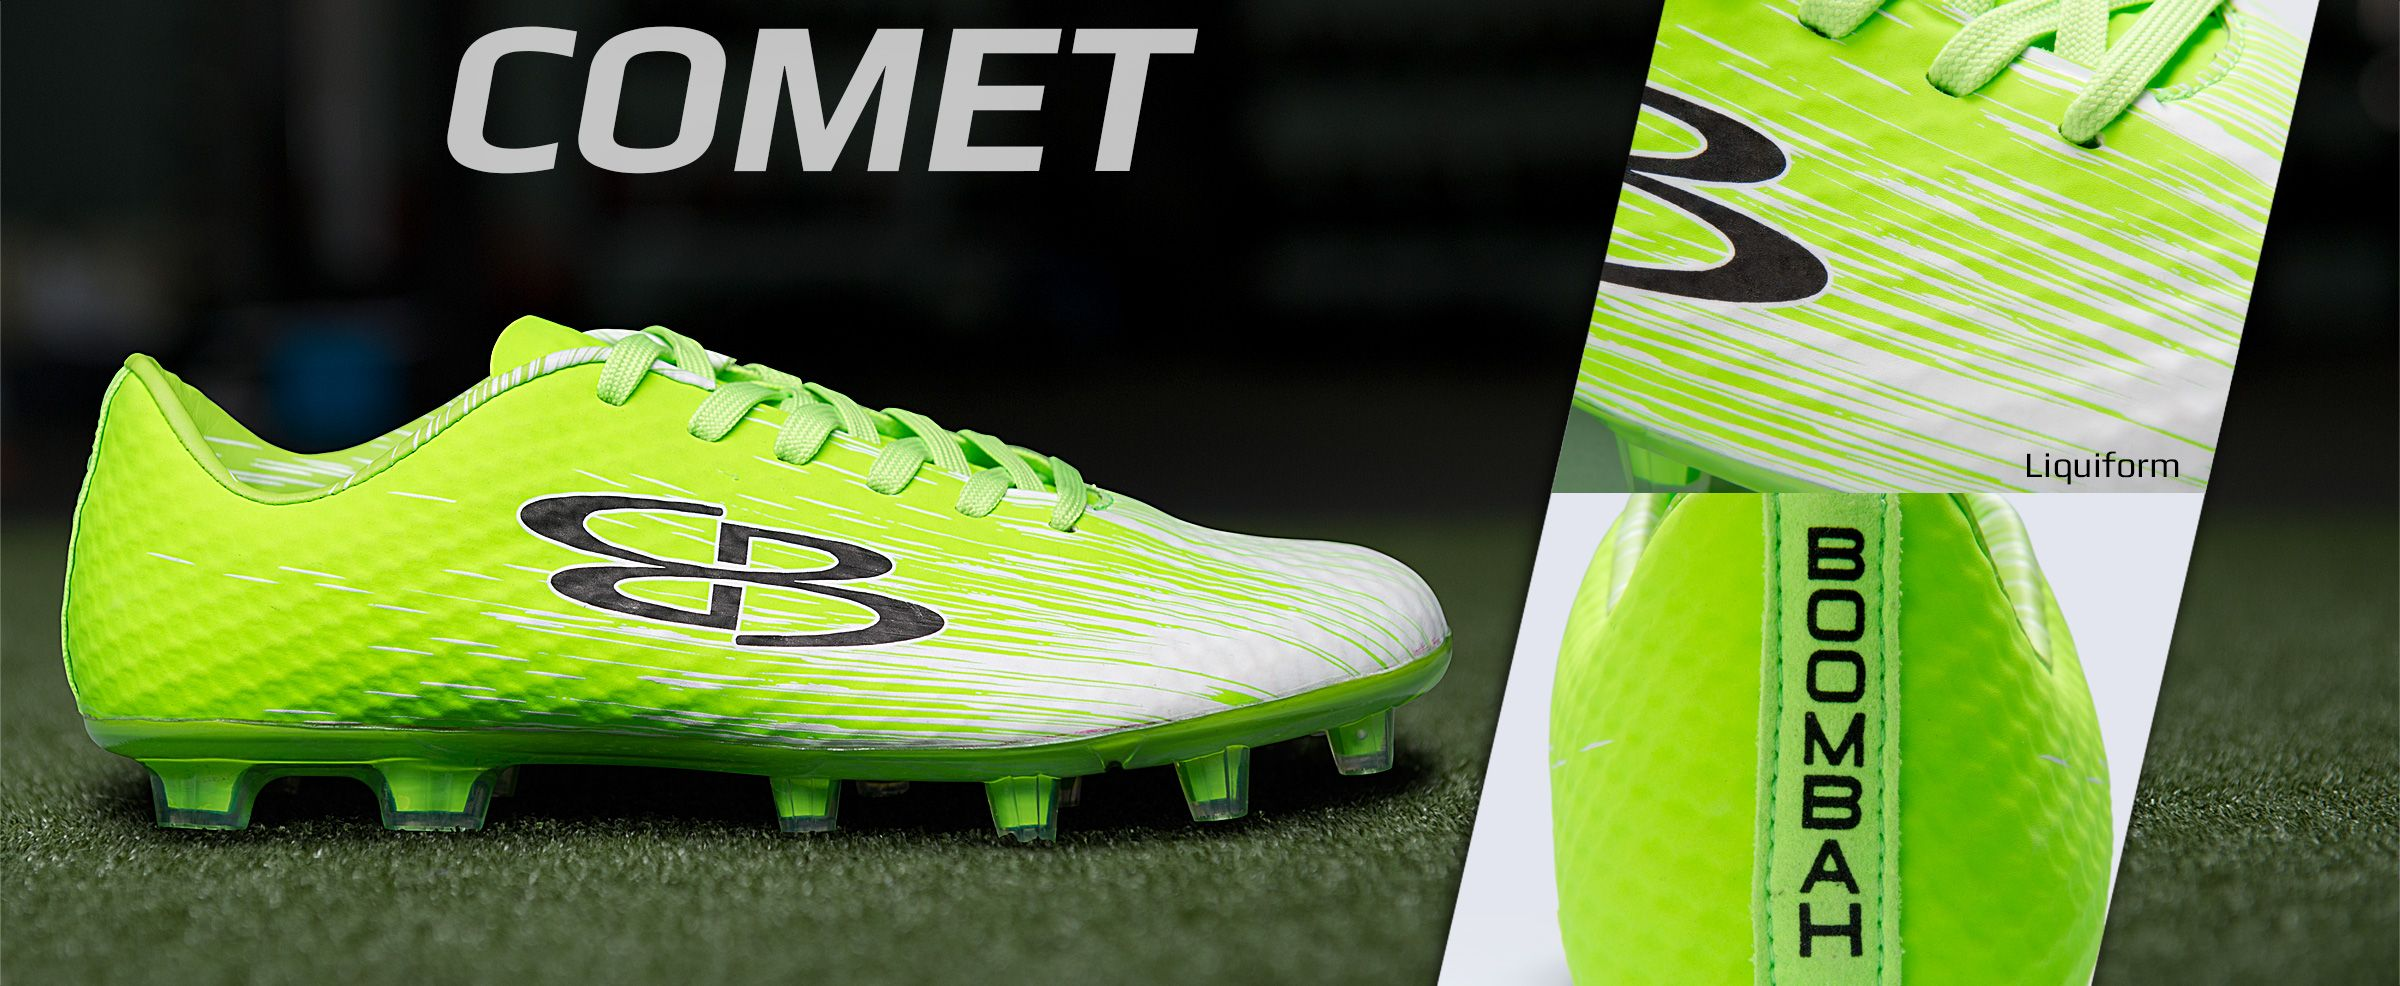 comet soccer cleats